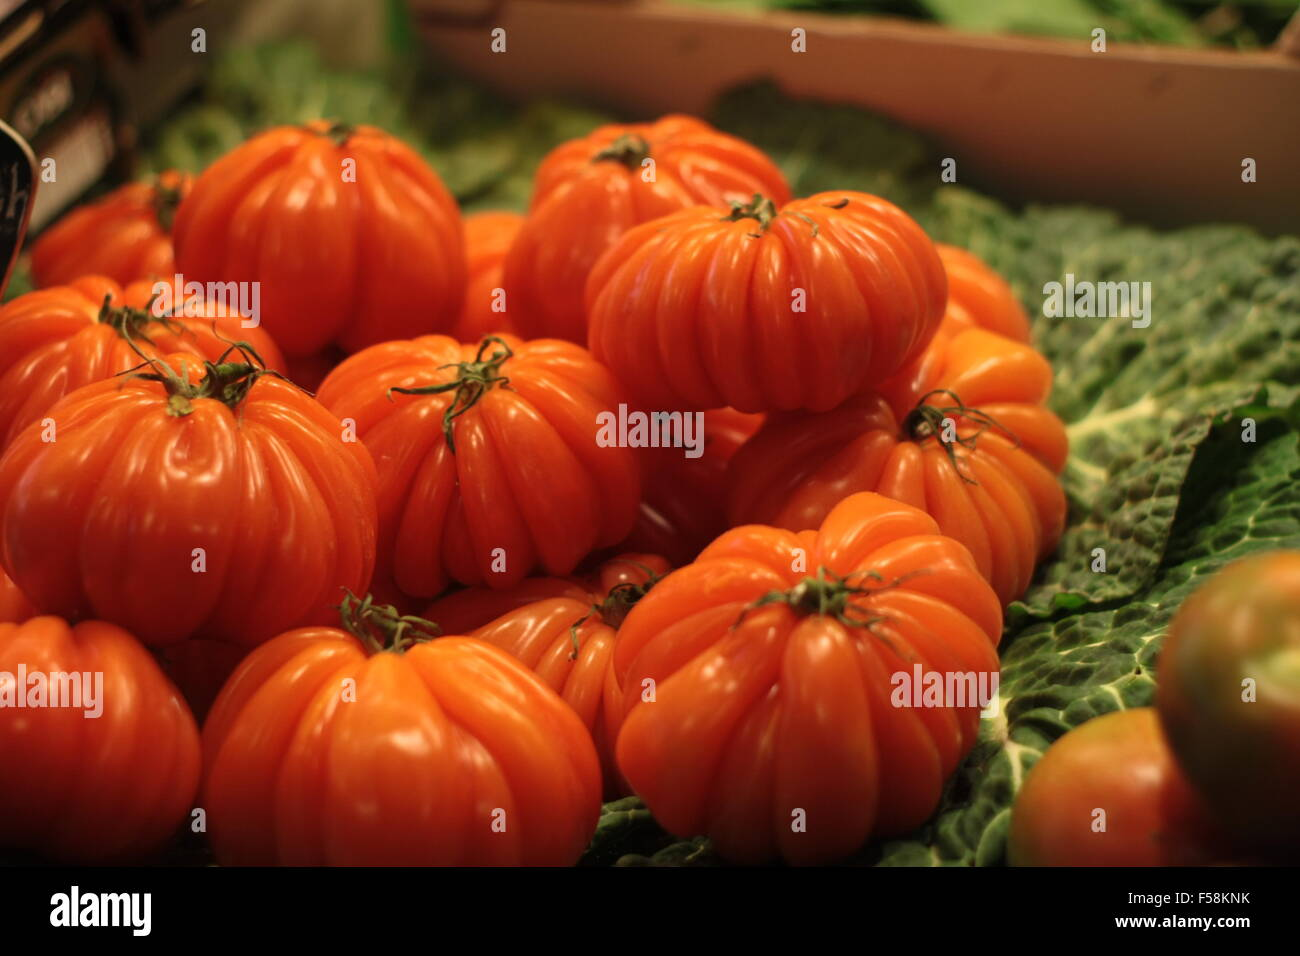 Organic Zapotec Pleated Tomatoes - Stock Image